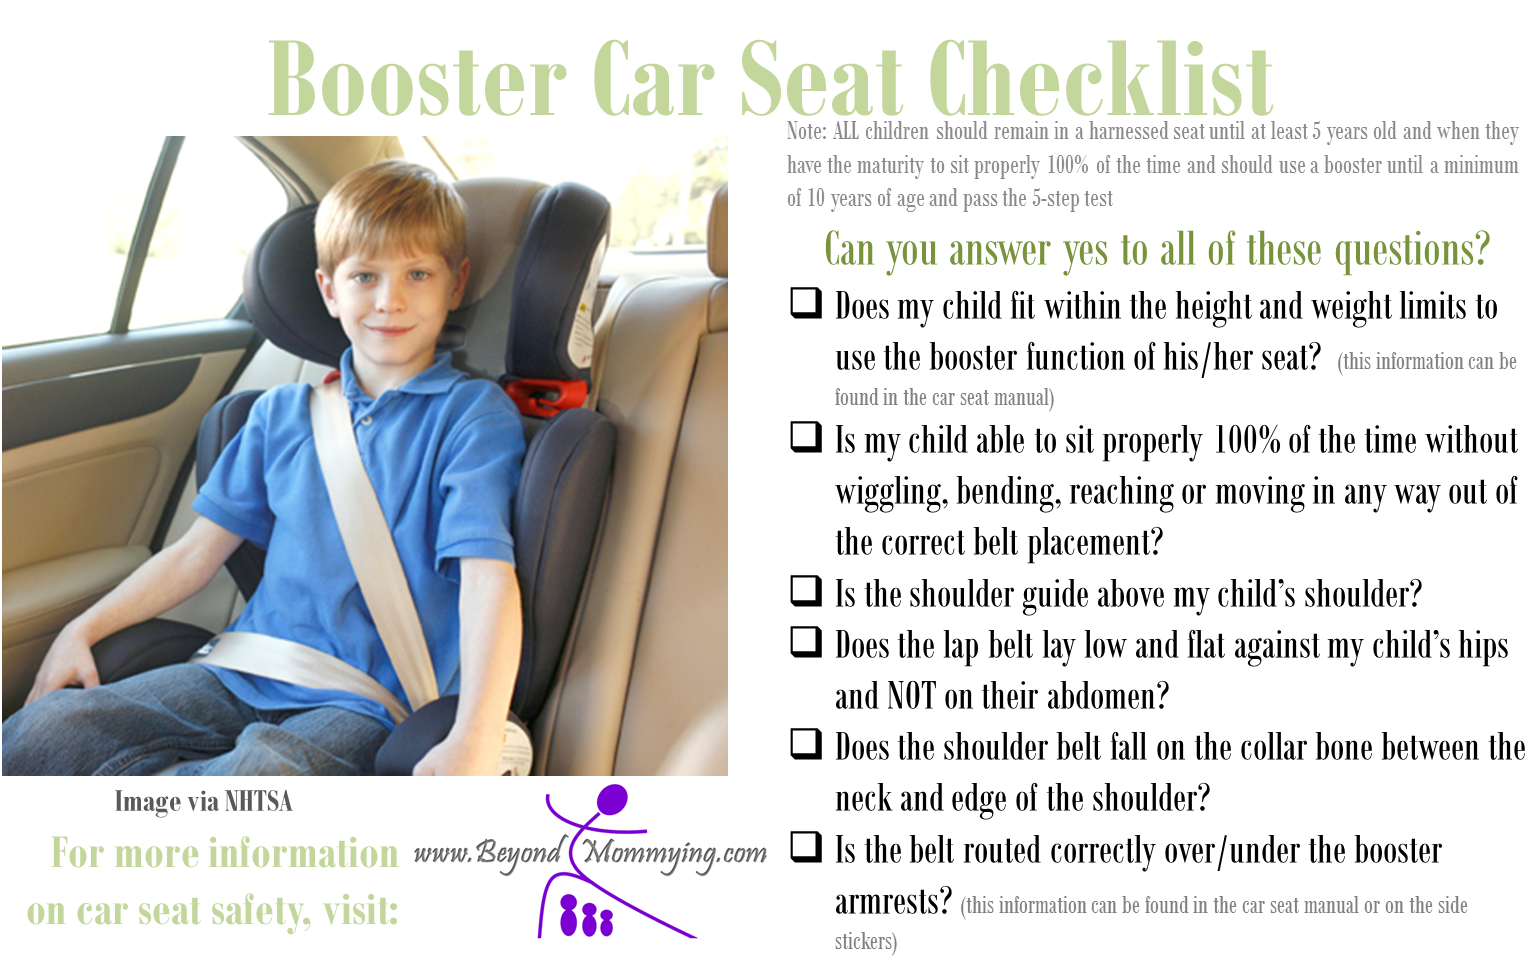 Car Seat Safety Checklists For Proper Car Seat Use